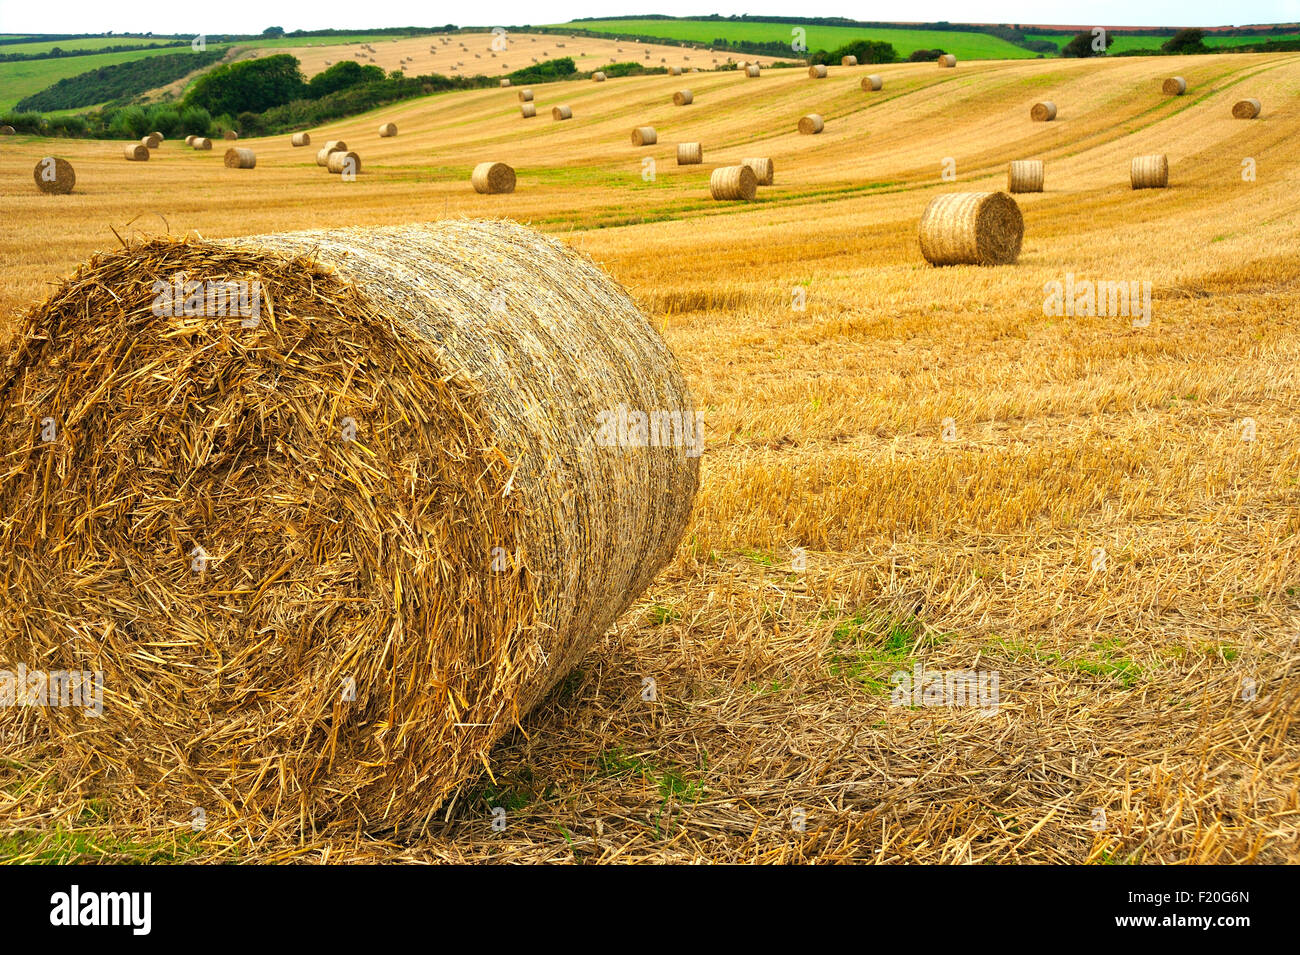 STROH BALLEN IM FELD IN DEVON UK Stockbild